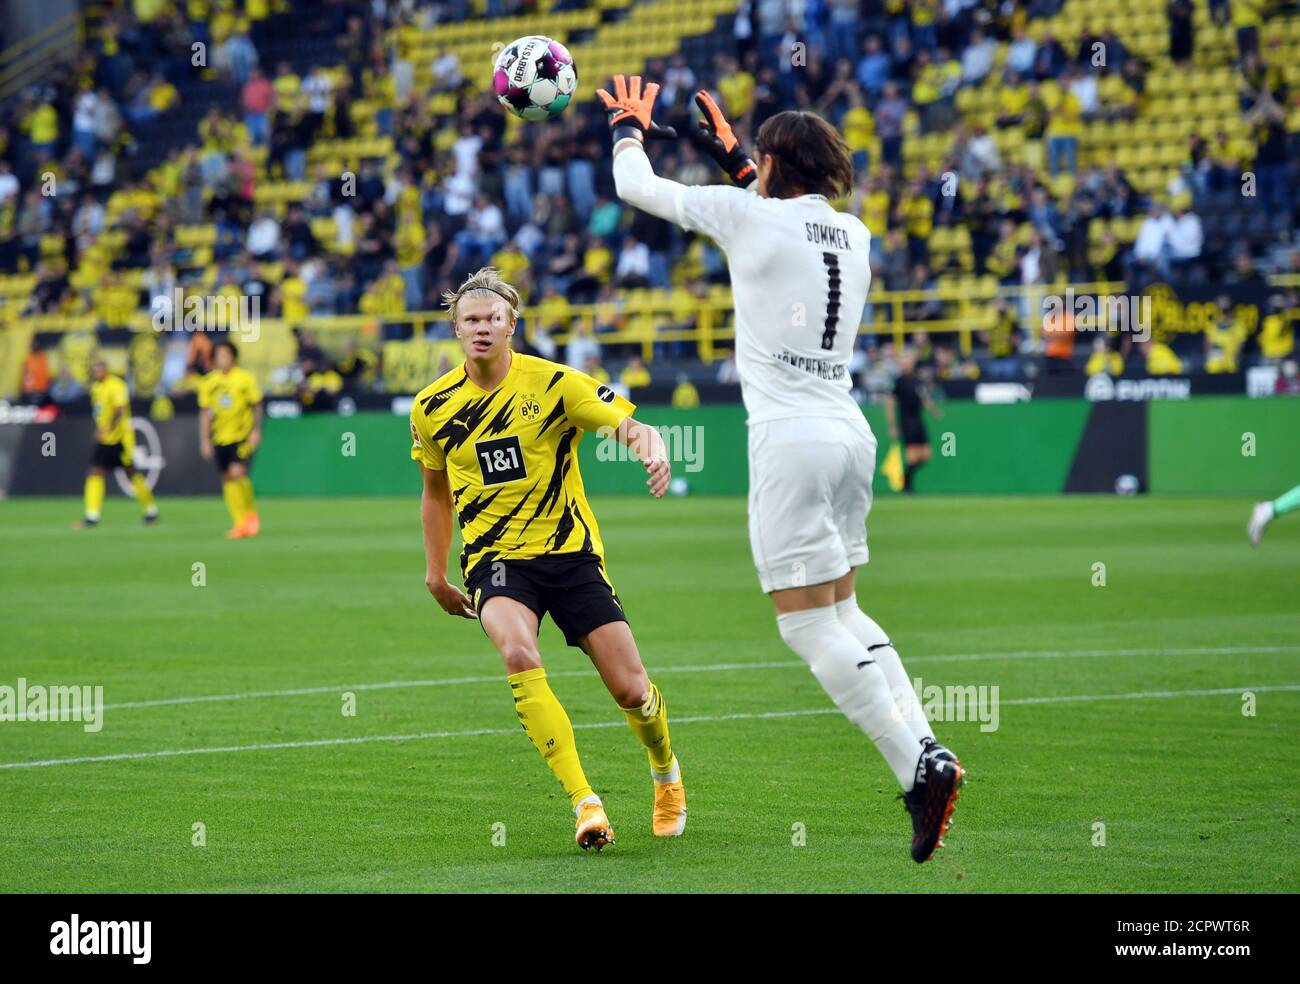 Football Goalkeeper High Resolution Stock Photography And Images Page 10 Alamy